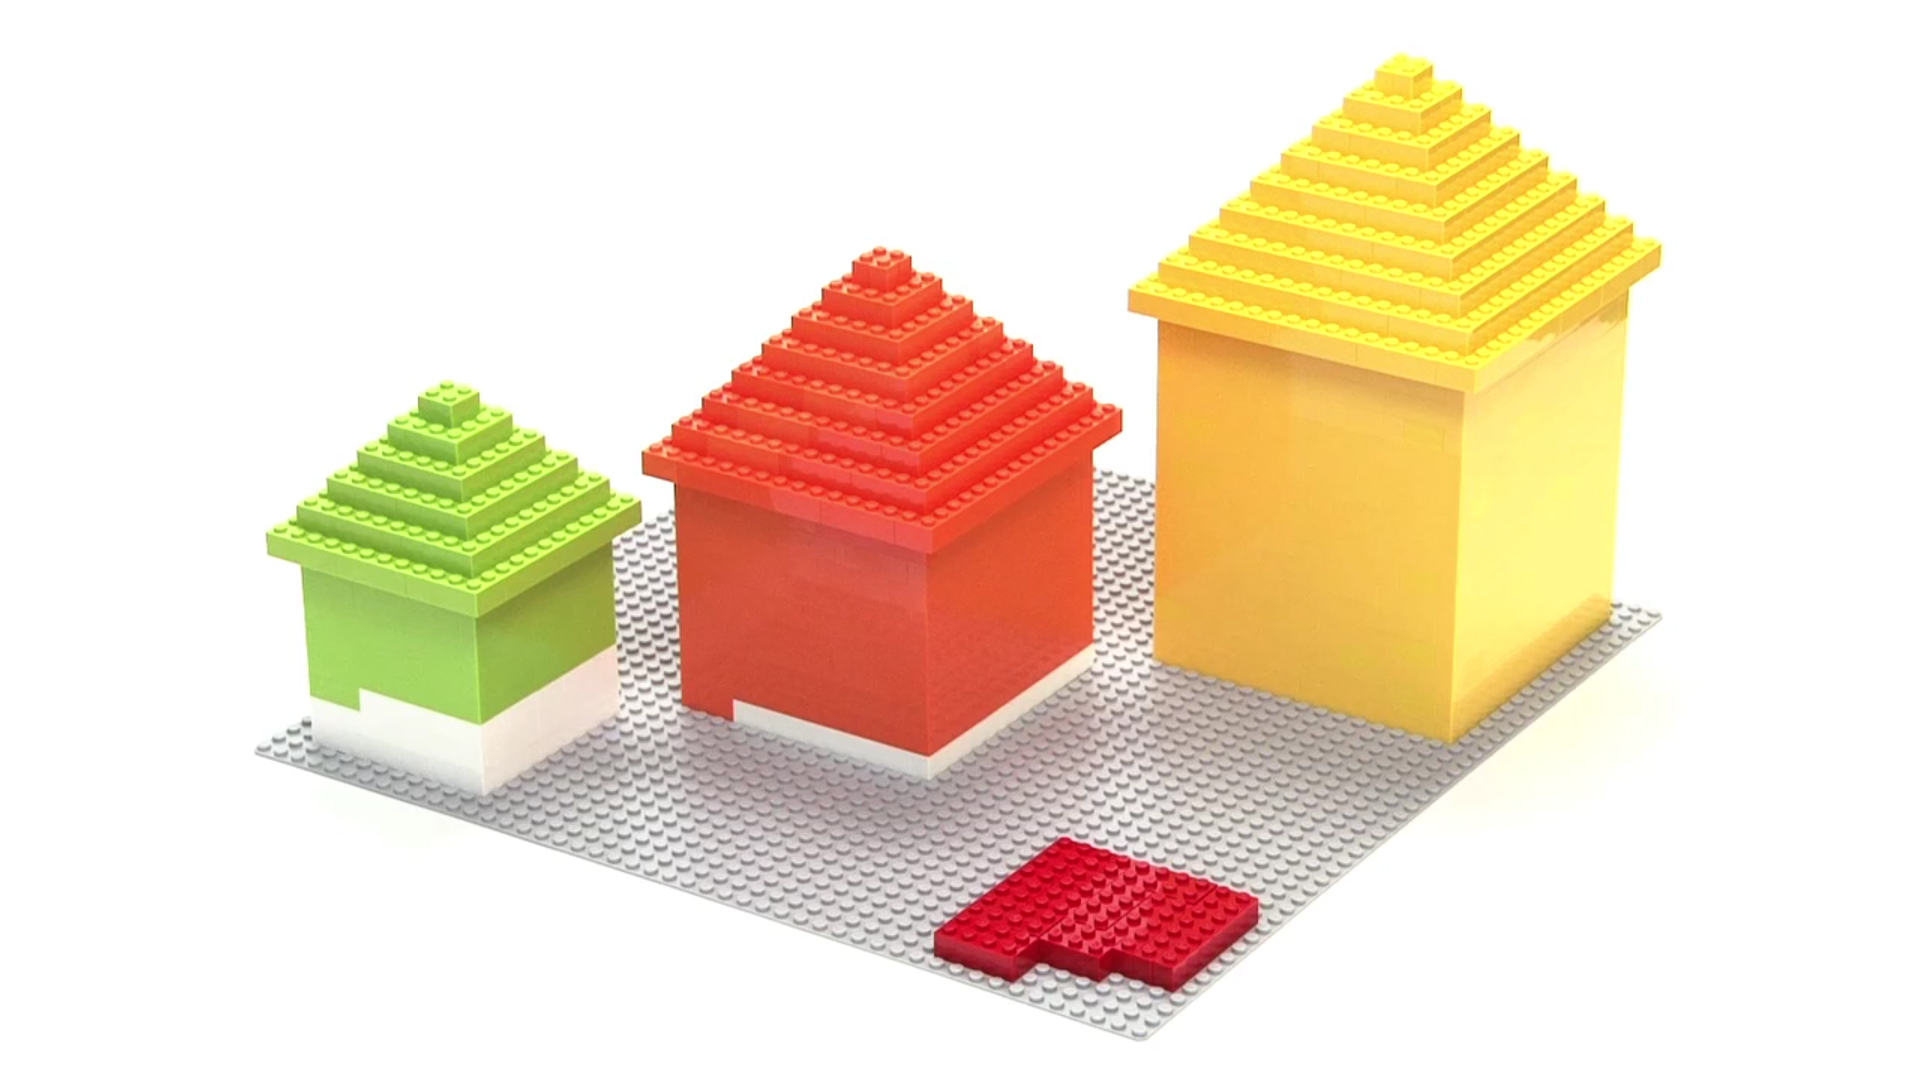 A hypothetical town made of Legos is used to explain why property taxes will likely go up in Minnesota next year.